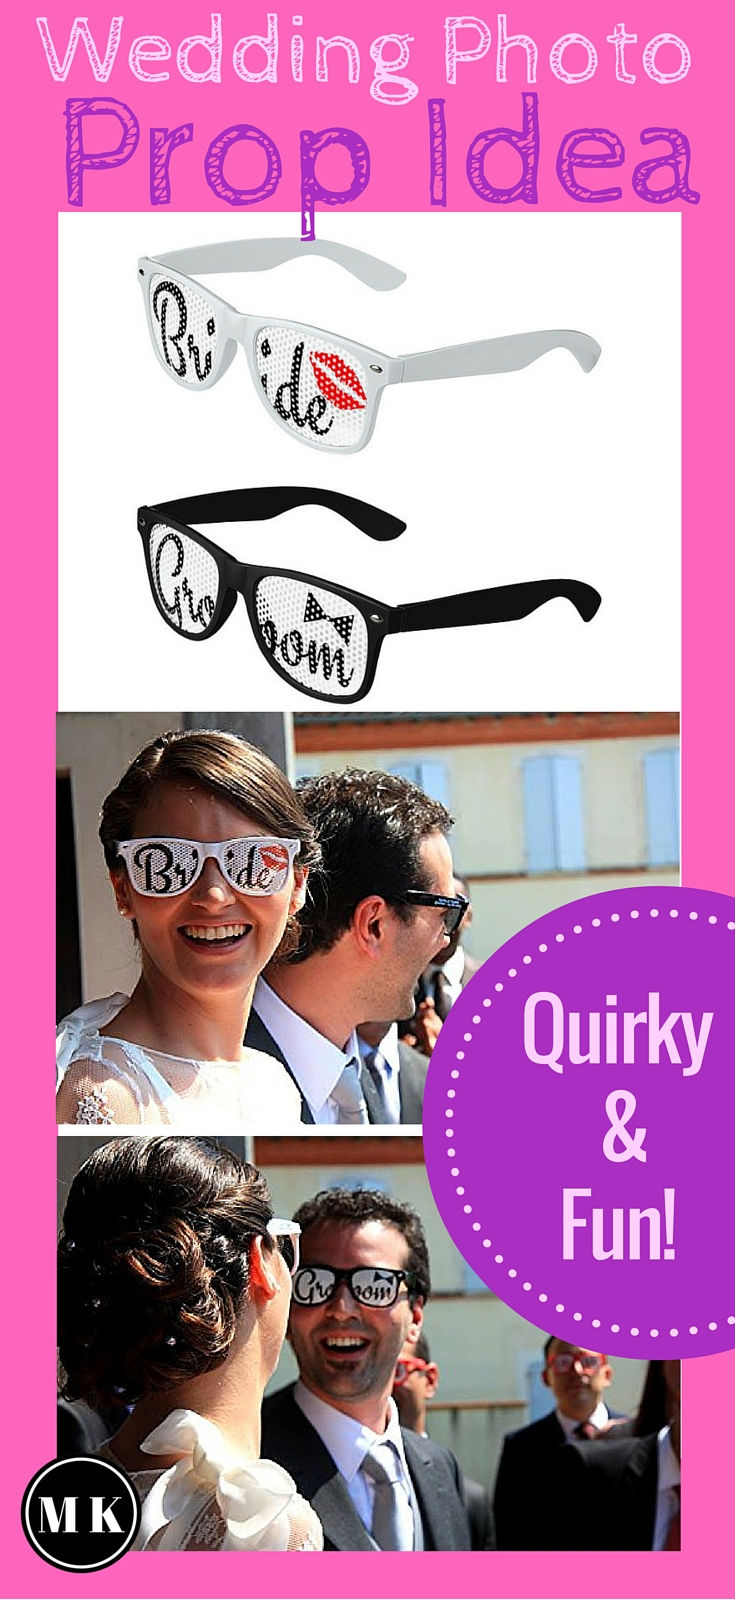 Wedding Picture Prop Idea Bride & Groom Sunglasses - These photoprops are so cute! They're a really simple way to add some unique and quirky photos to your wedding day photography checklist. You could get the bridesmaid and groomsmen glasses as well and have a really awesome bridal party group shot! Fun idea!